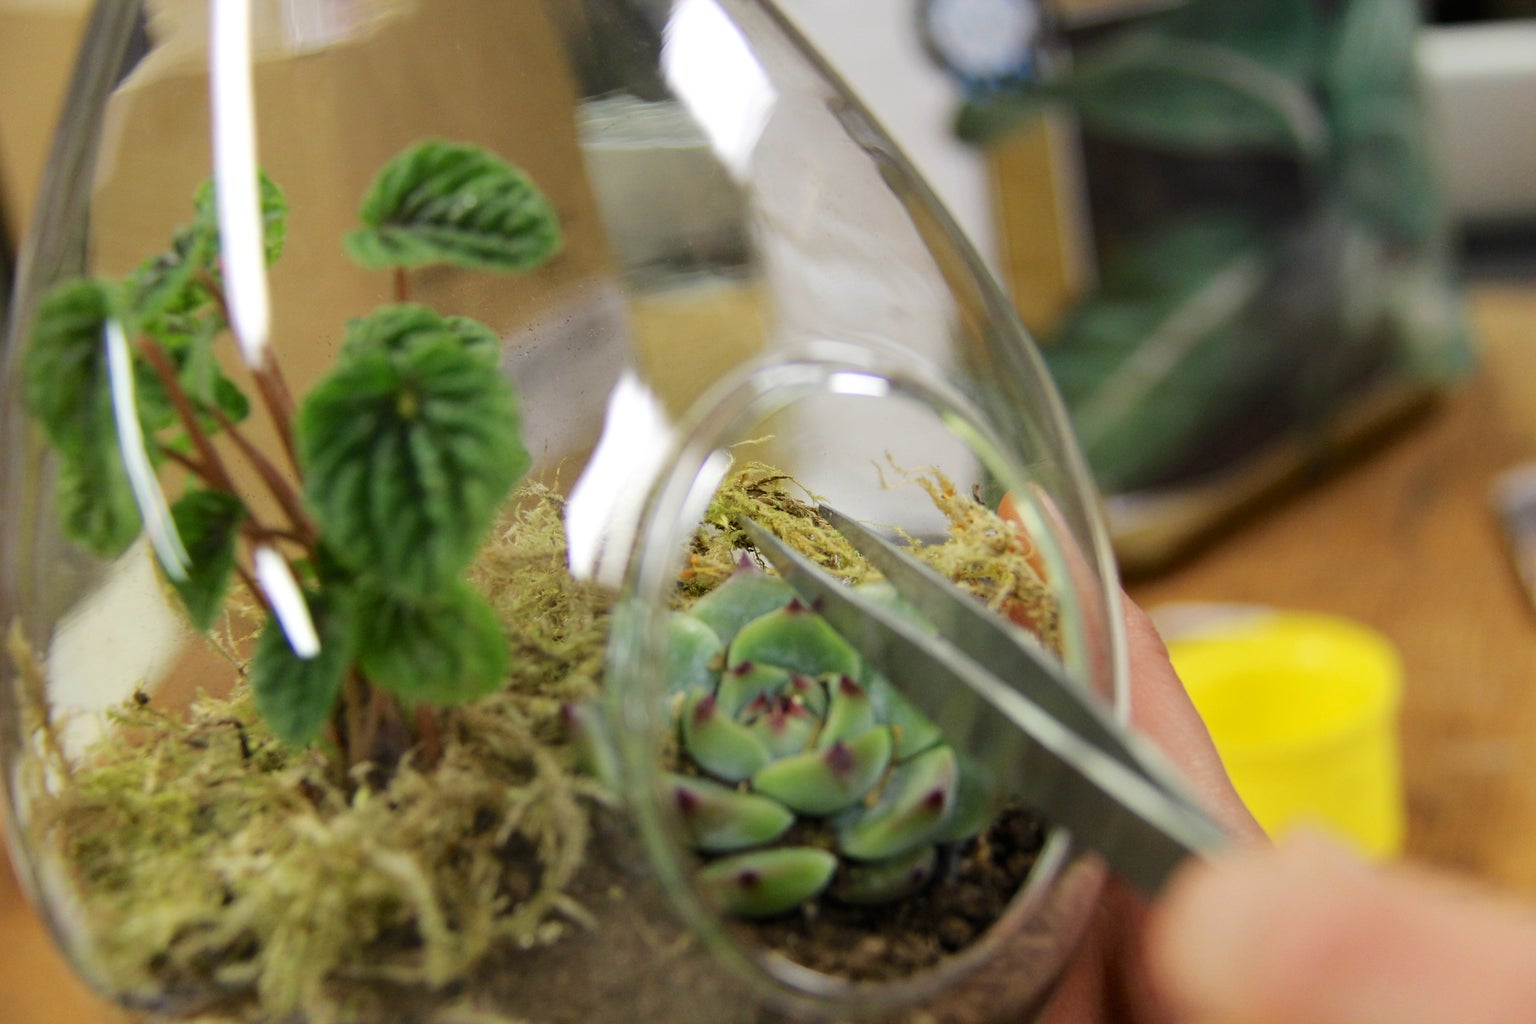 How to Add Small Features to a Terrarium